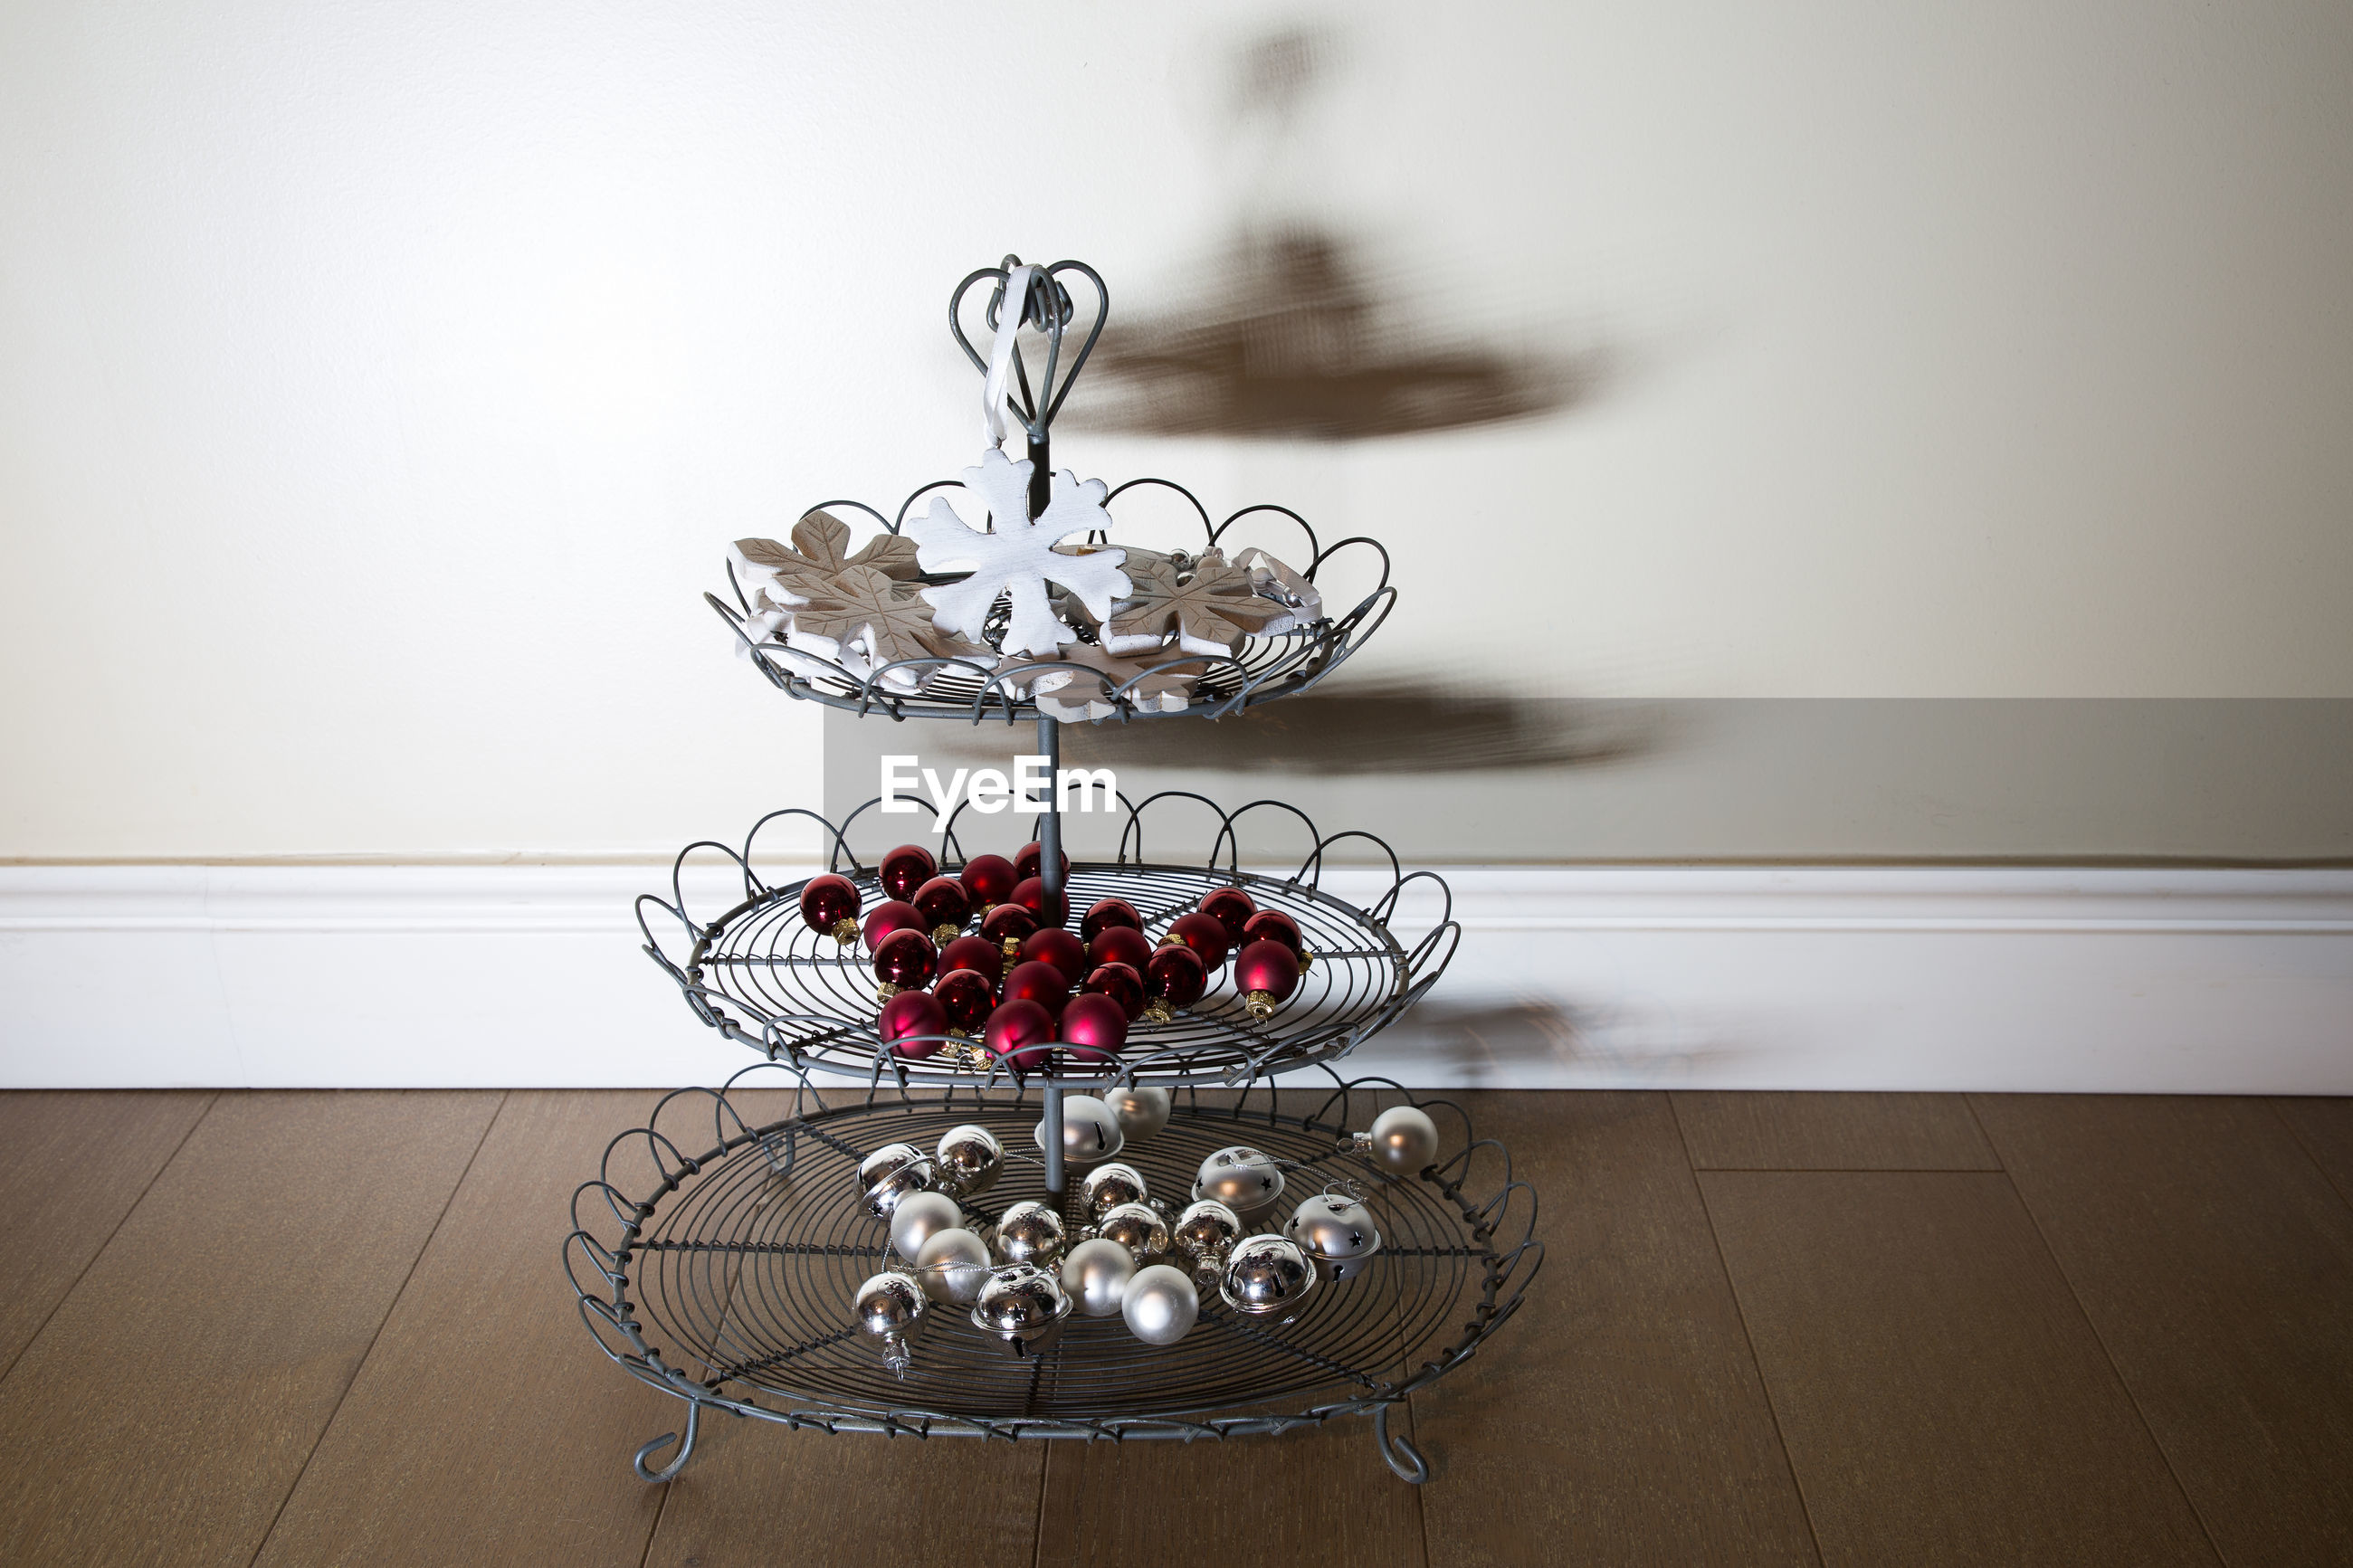 Christmas decorations on rack at table